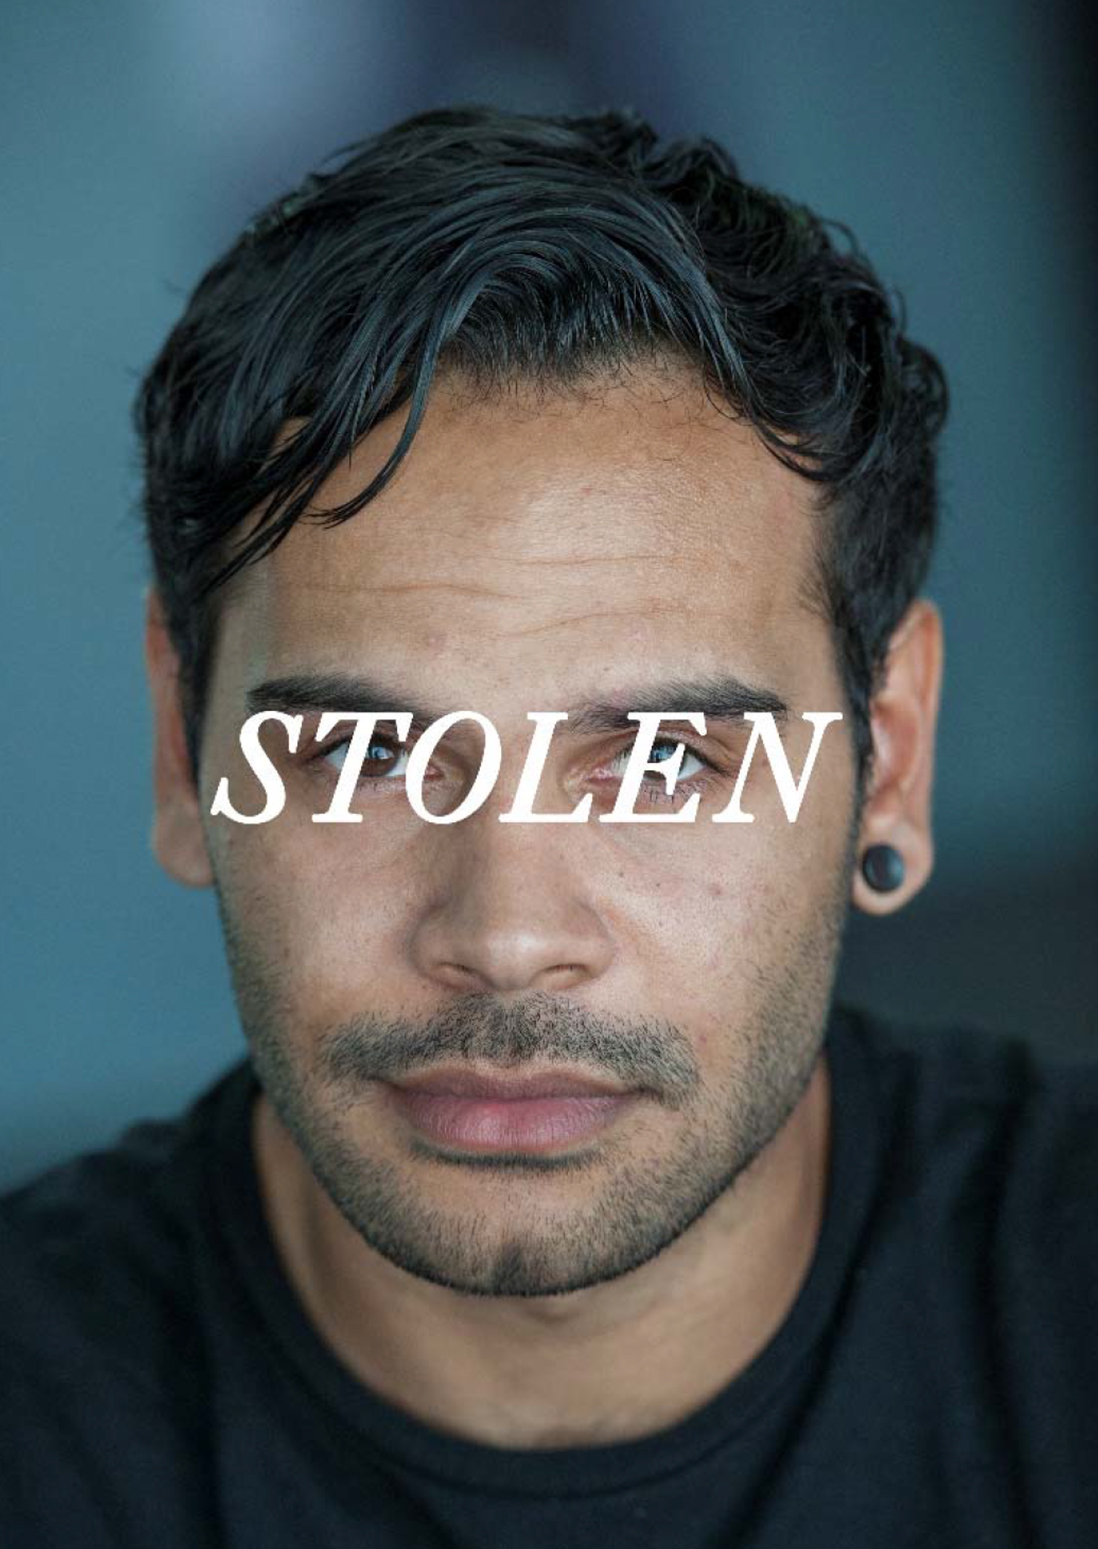 stolen by jane harrison Drama essay sample stolen stolen by jane harrison, depicts the broken lives of five children ruby, sandy, anne, shirley and jimmy and in doing so, portrays a myriad of personal experiences of those living in australian society.